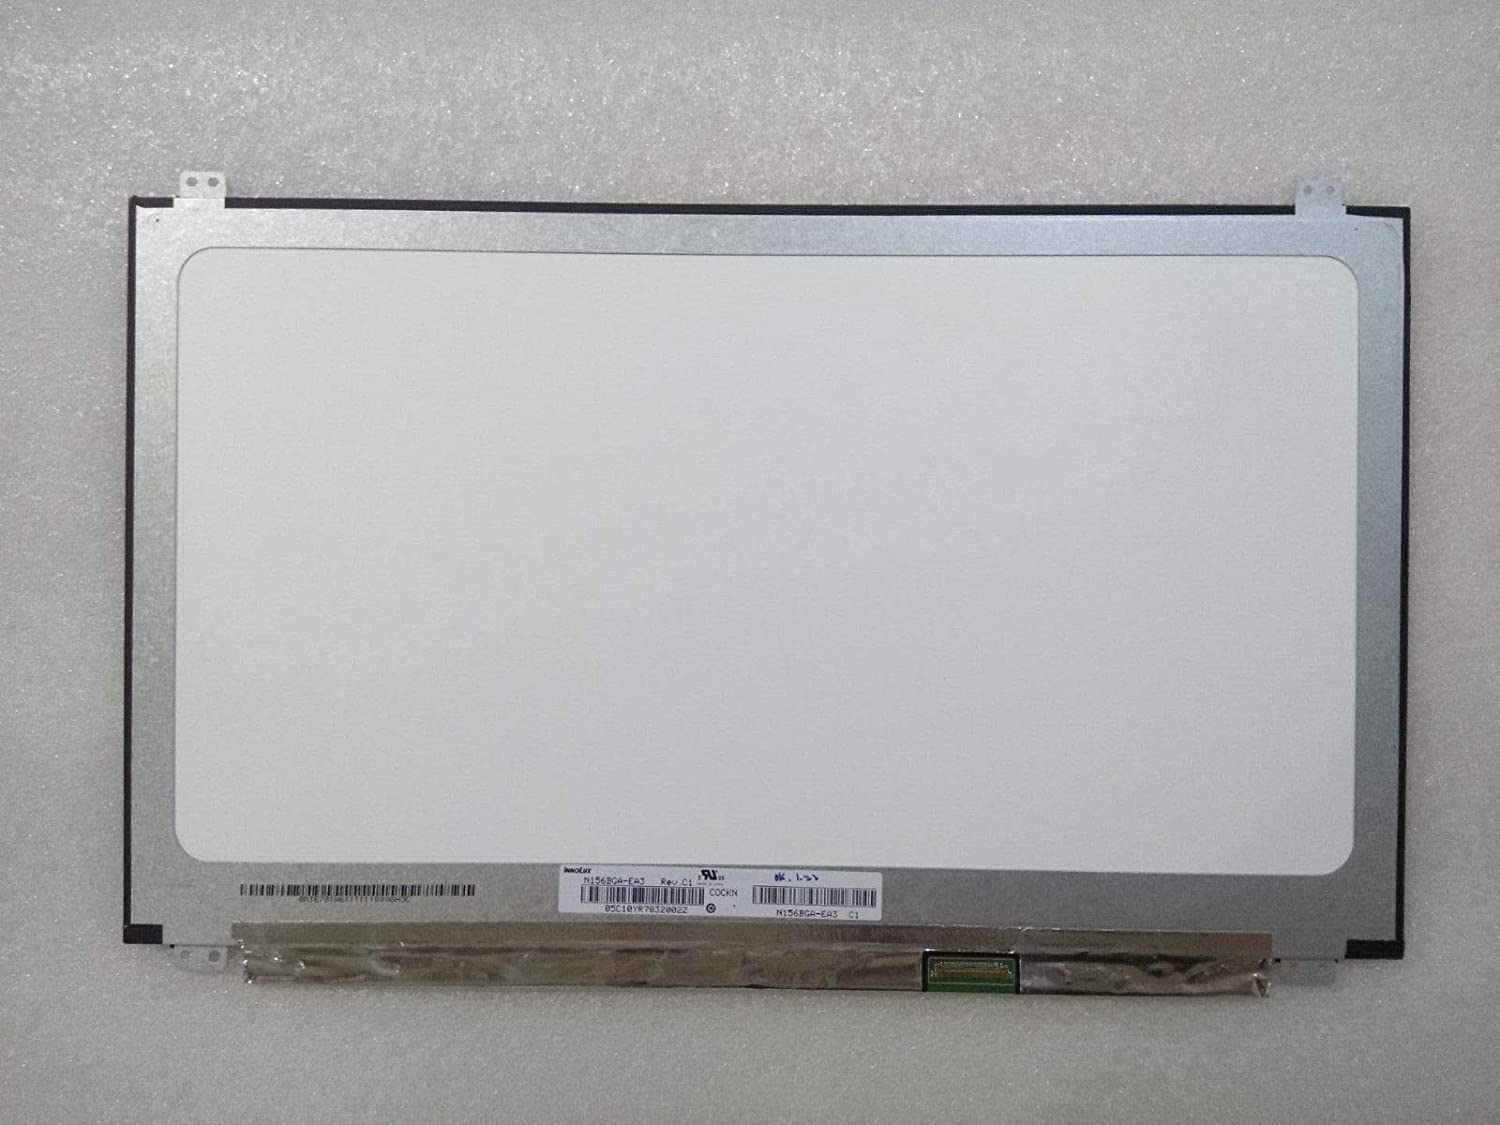 PC Parts Unlimited N156HGA-EAL New Innolux N156HGA-EAL 15.6 Full-HD 1080P Laptop LED LCD Replacement Screen